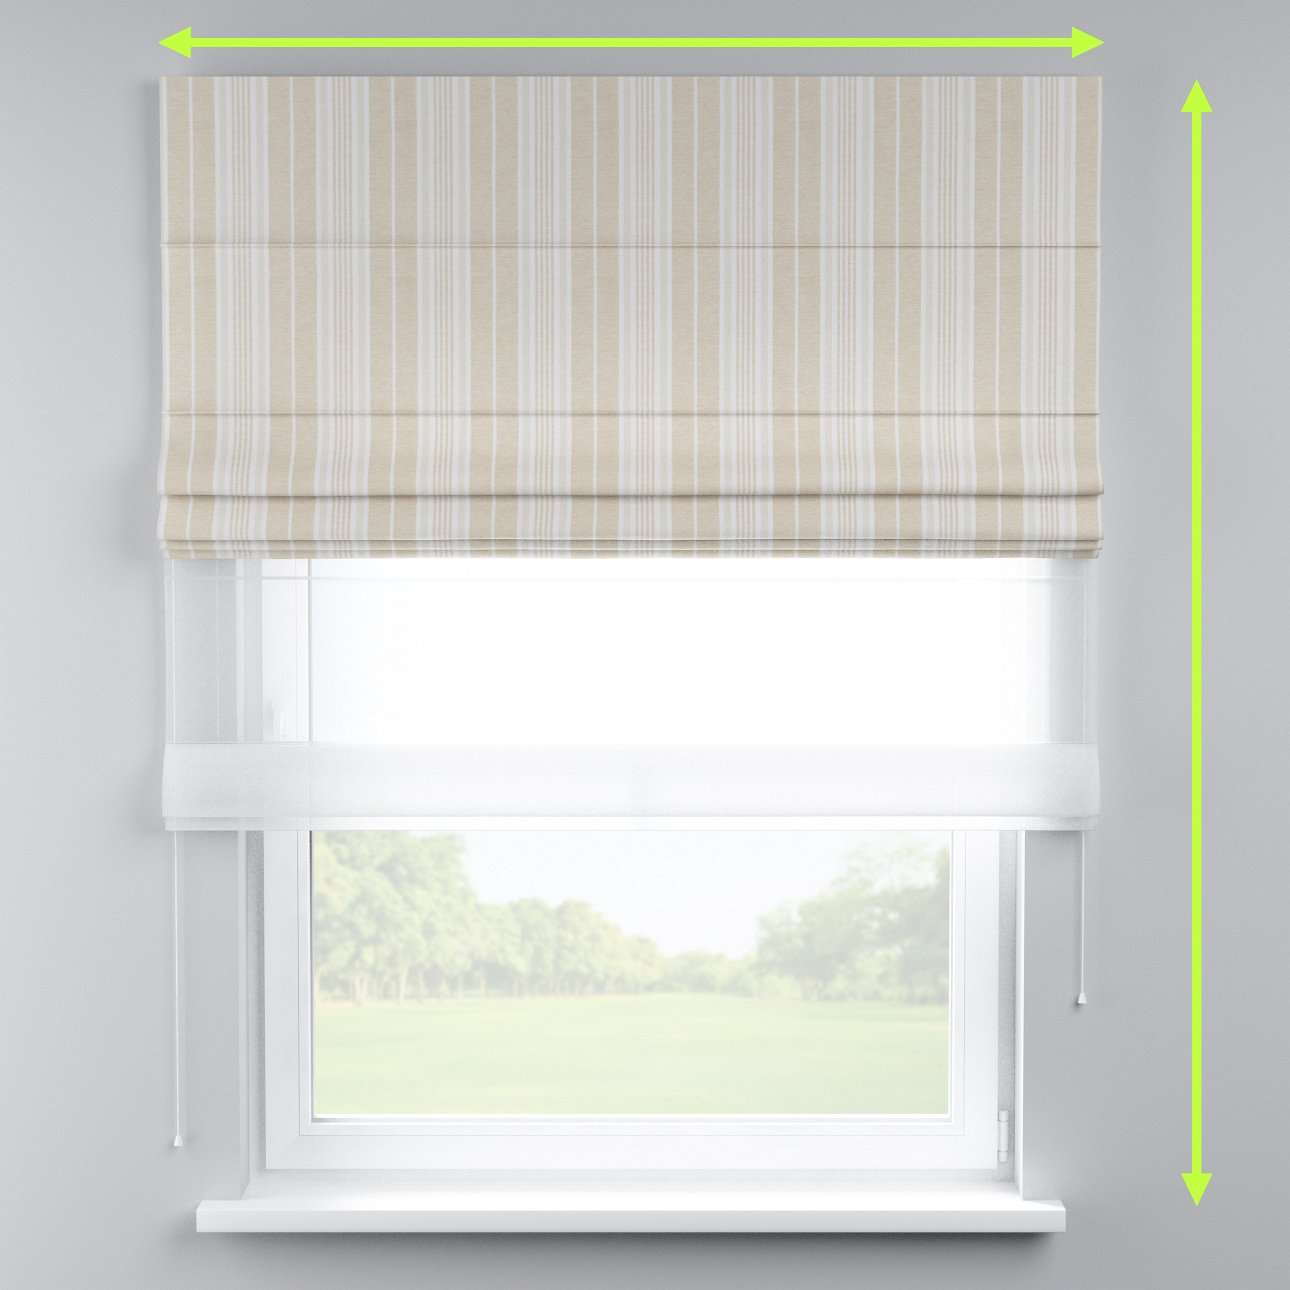 Voile and fabric roman blind (DUO II) in collection Rustica, fabric: 138-24